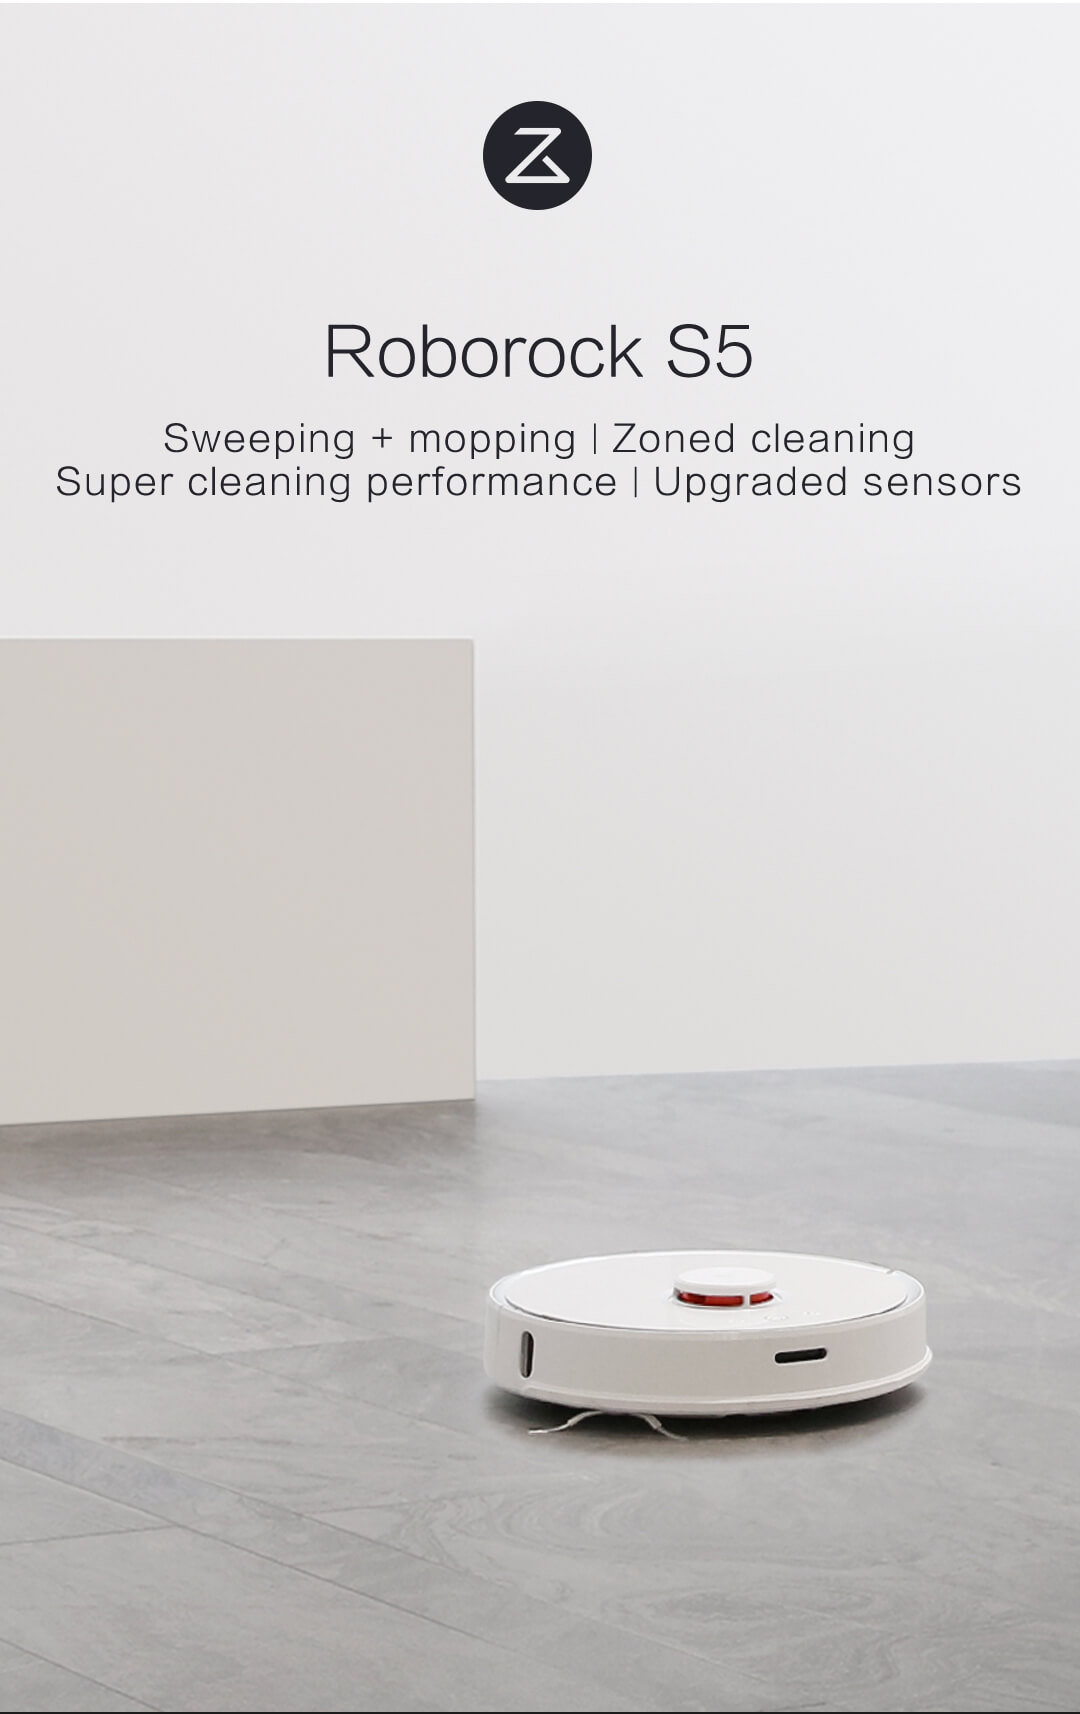 2019 New Xiaomi Roborock S5 Robotic Vacuum Cleaner Mijia Cordless Robot  International English Voice Assistance Sweeping Mopping Spin Mop Water Tank